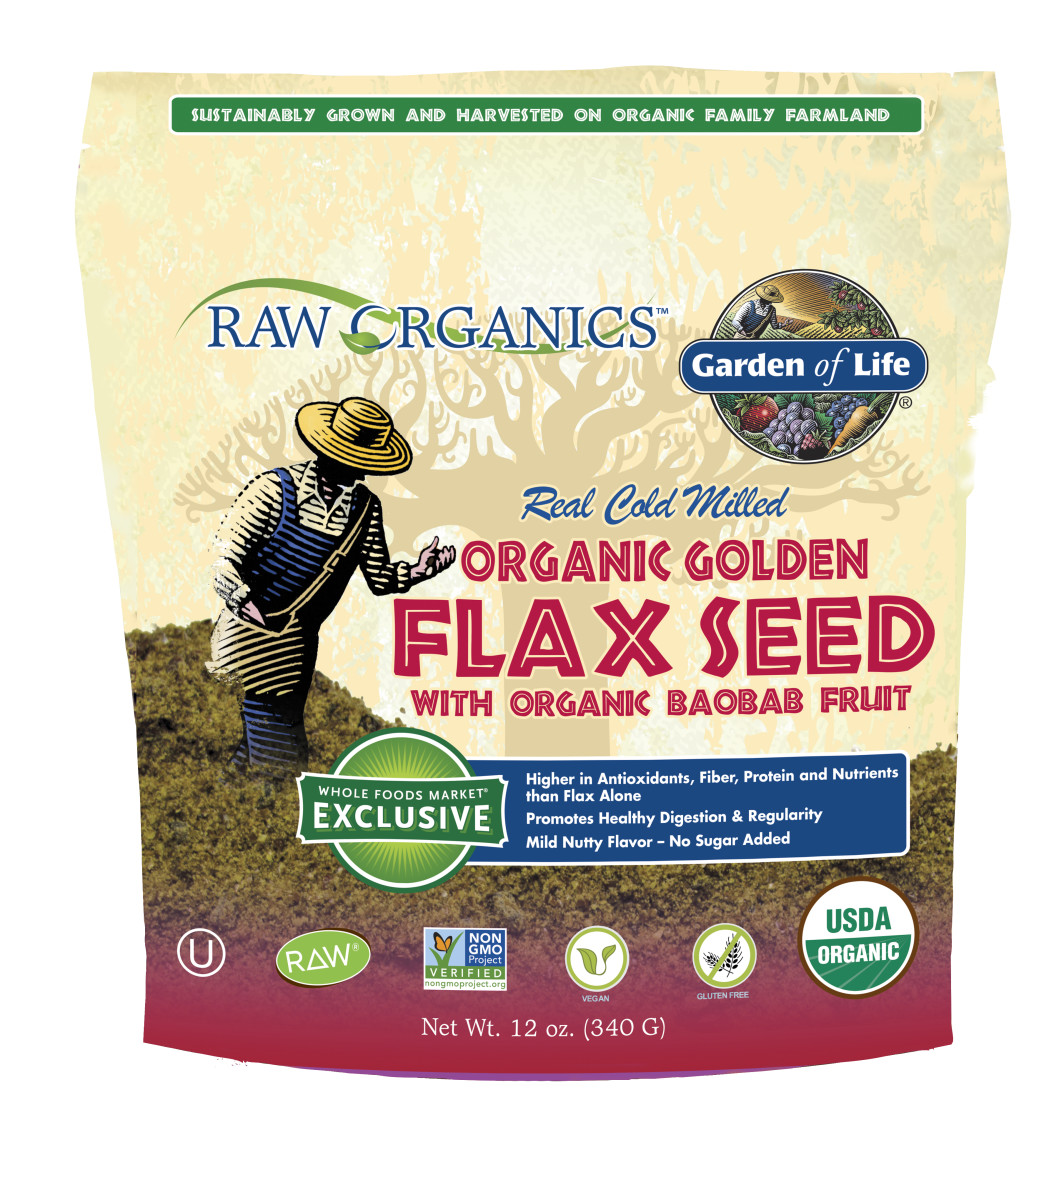 Garden of Life's Raw Organics Flax with Baobab Fruit